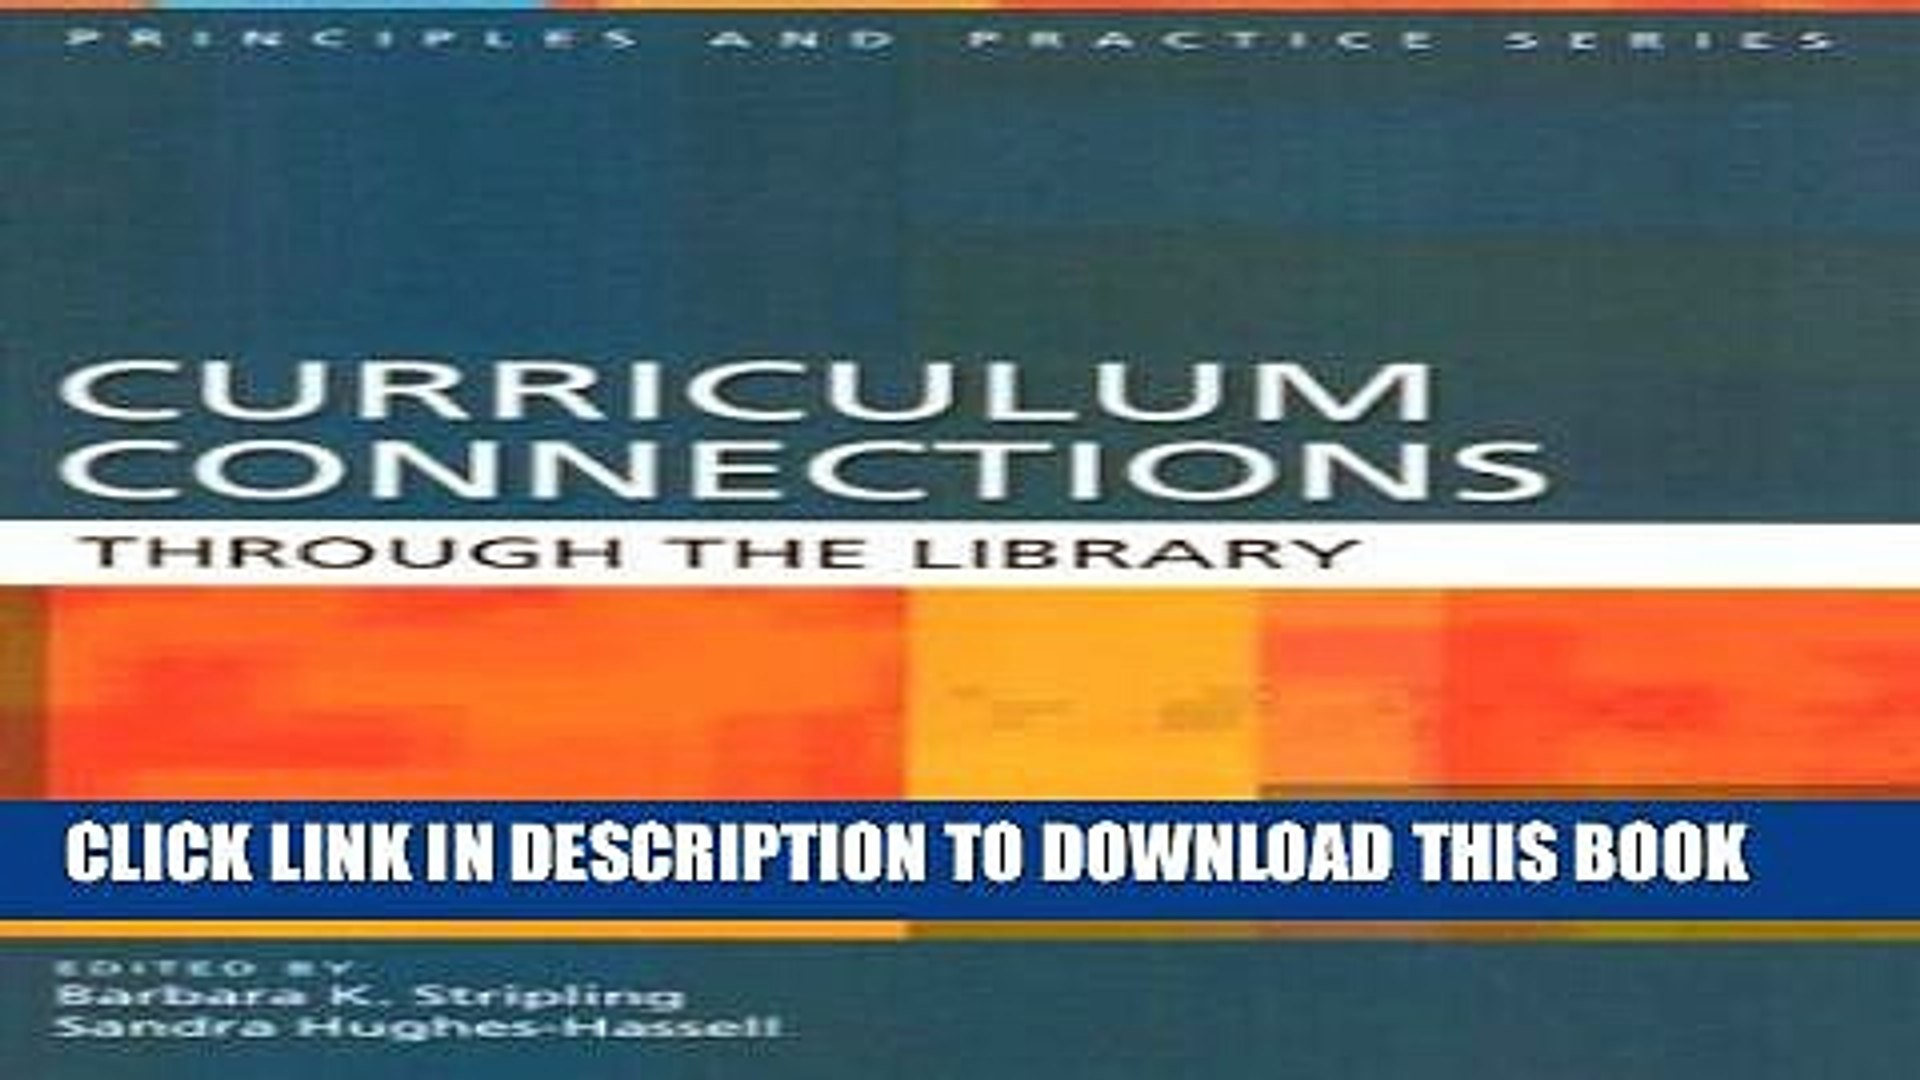 [Read PDF] Curriculum Connections through the Library (Principles and  Practice) Ebook Online